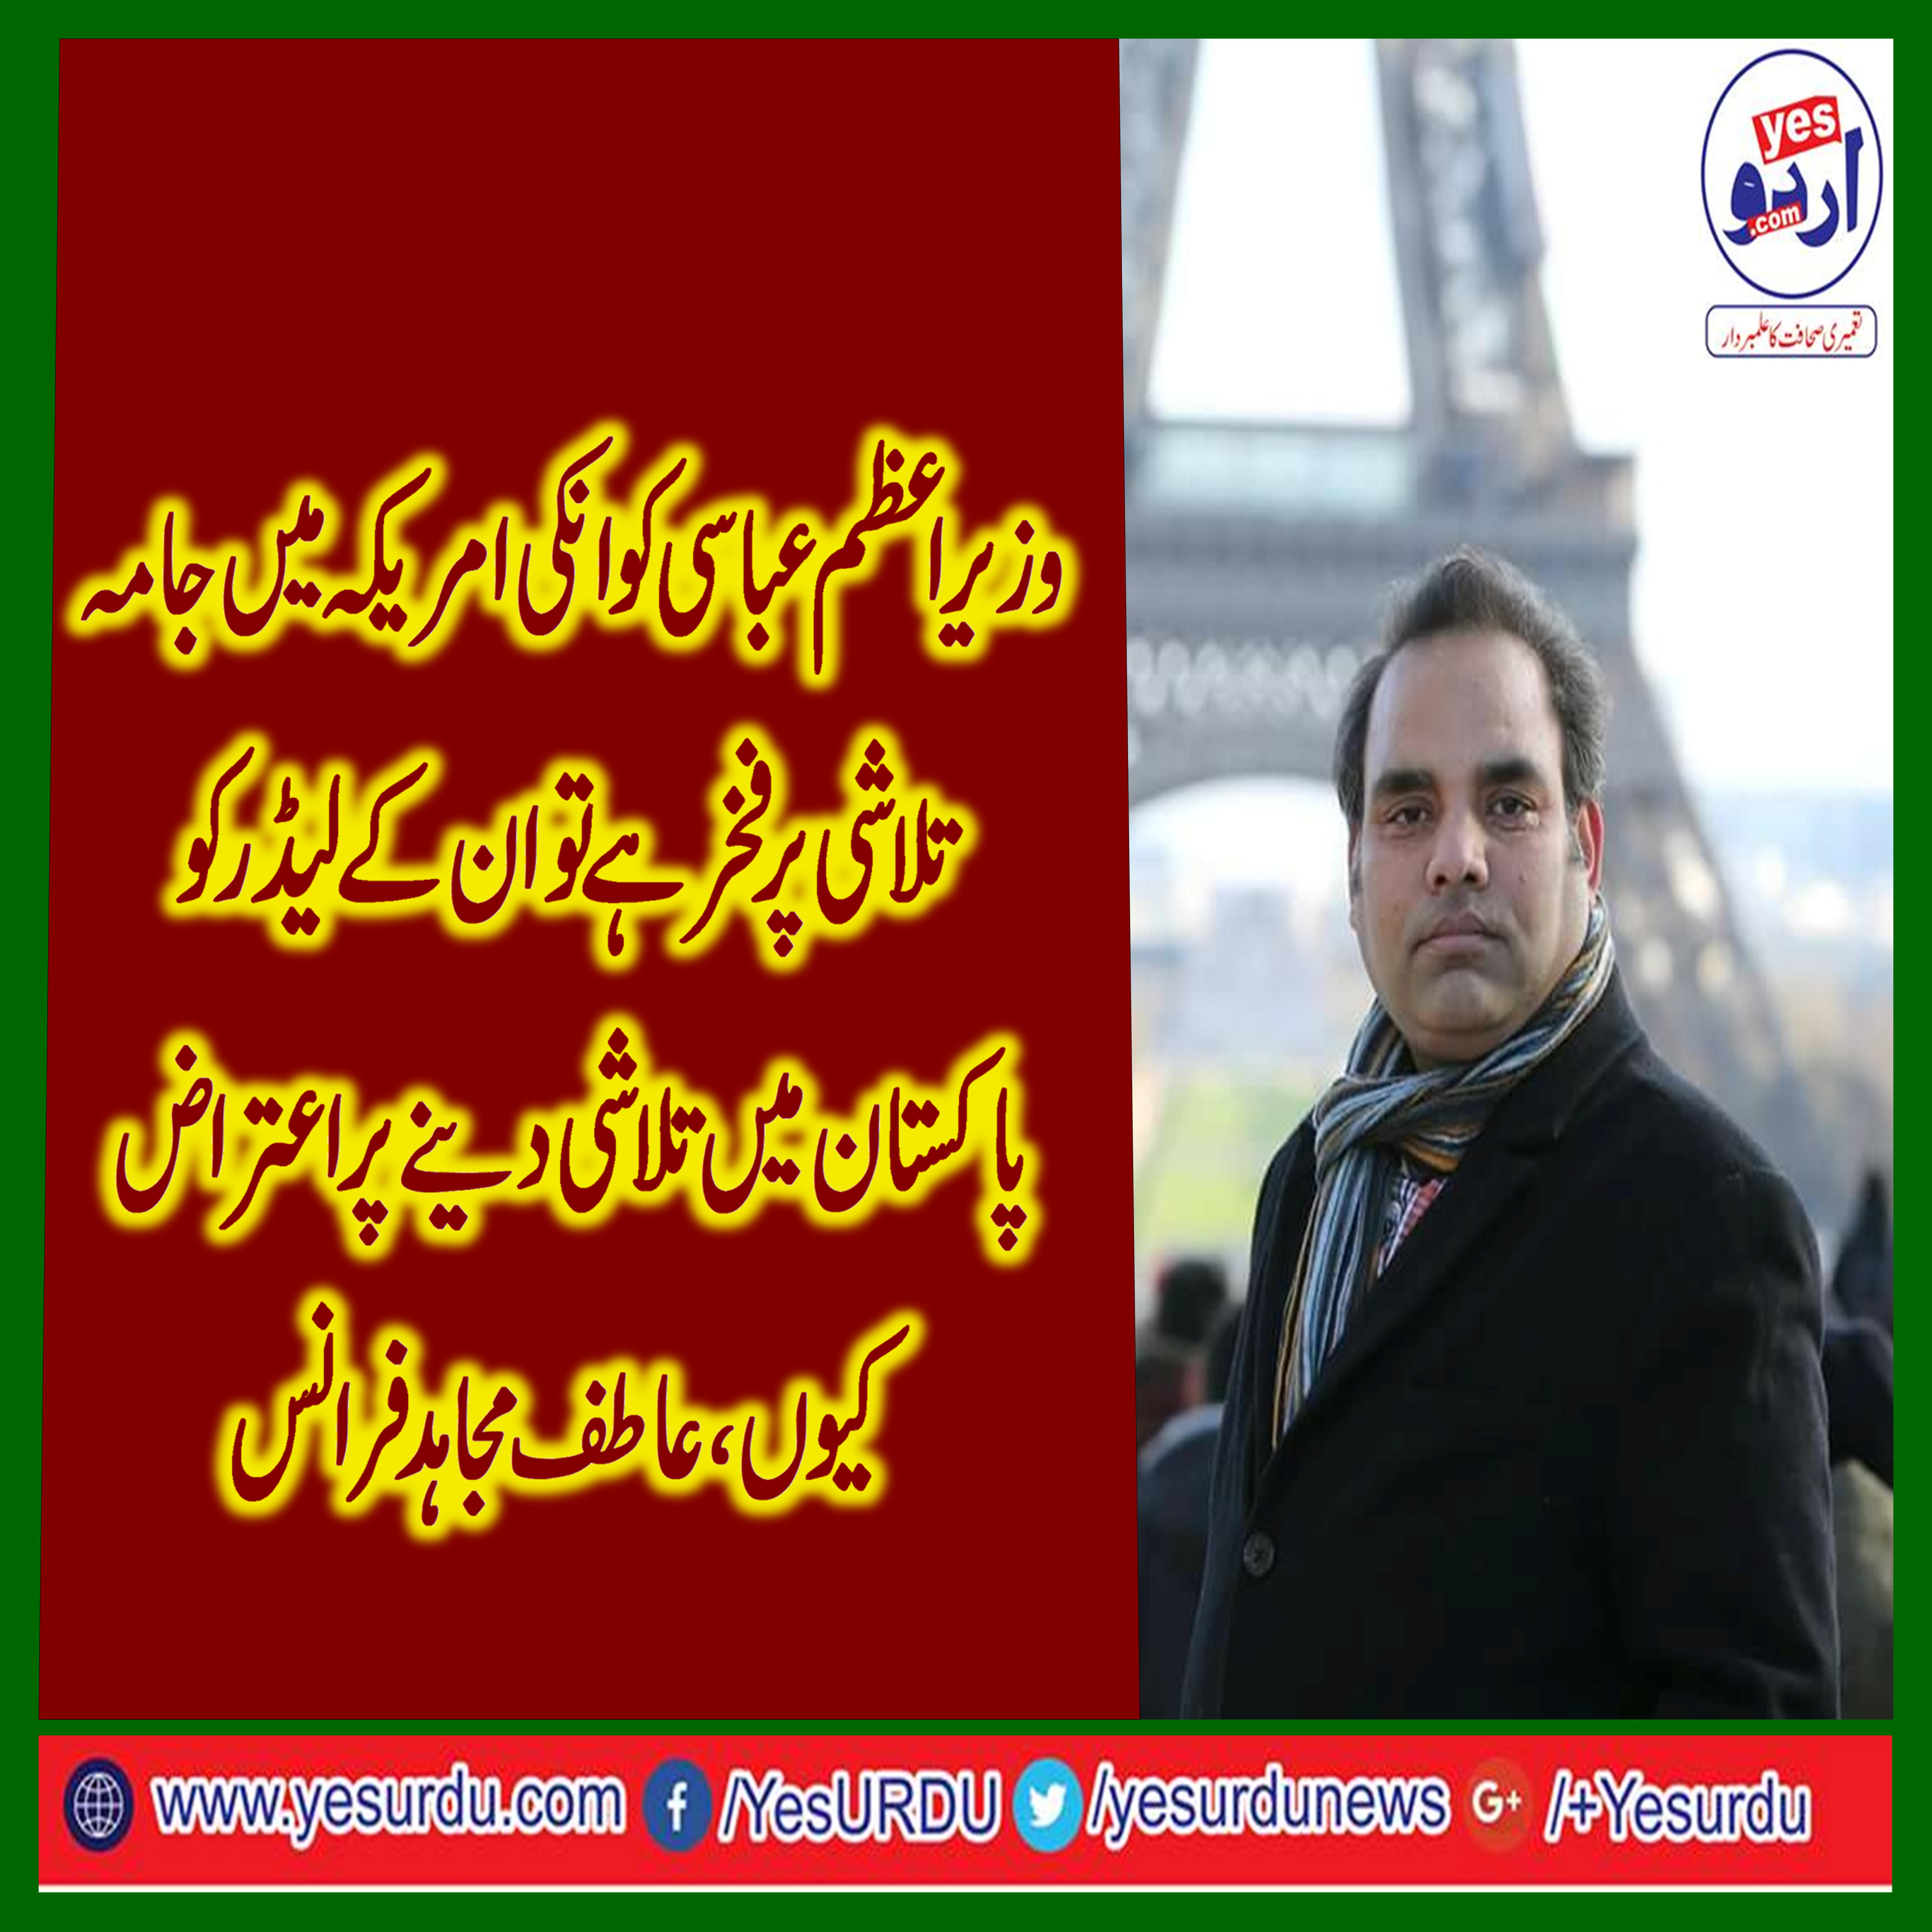 ATIF MUGHAL, SECRETARY, INFORMATION, LABOR WING, PAKISTAN TEHREEK INSAF, FRANCE, COMMENTED, ON, PRIME MINISTER, SHAHID KHAQAN ABBASI